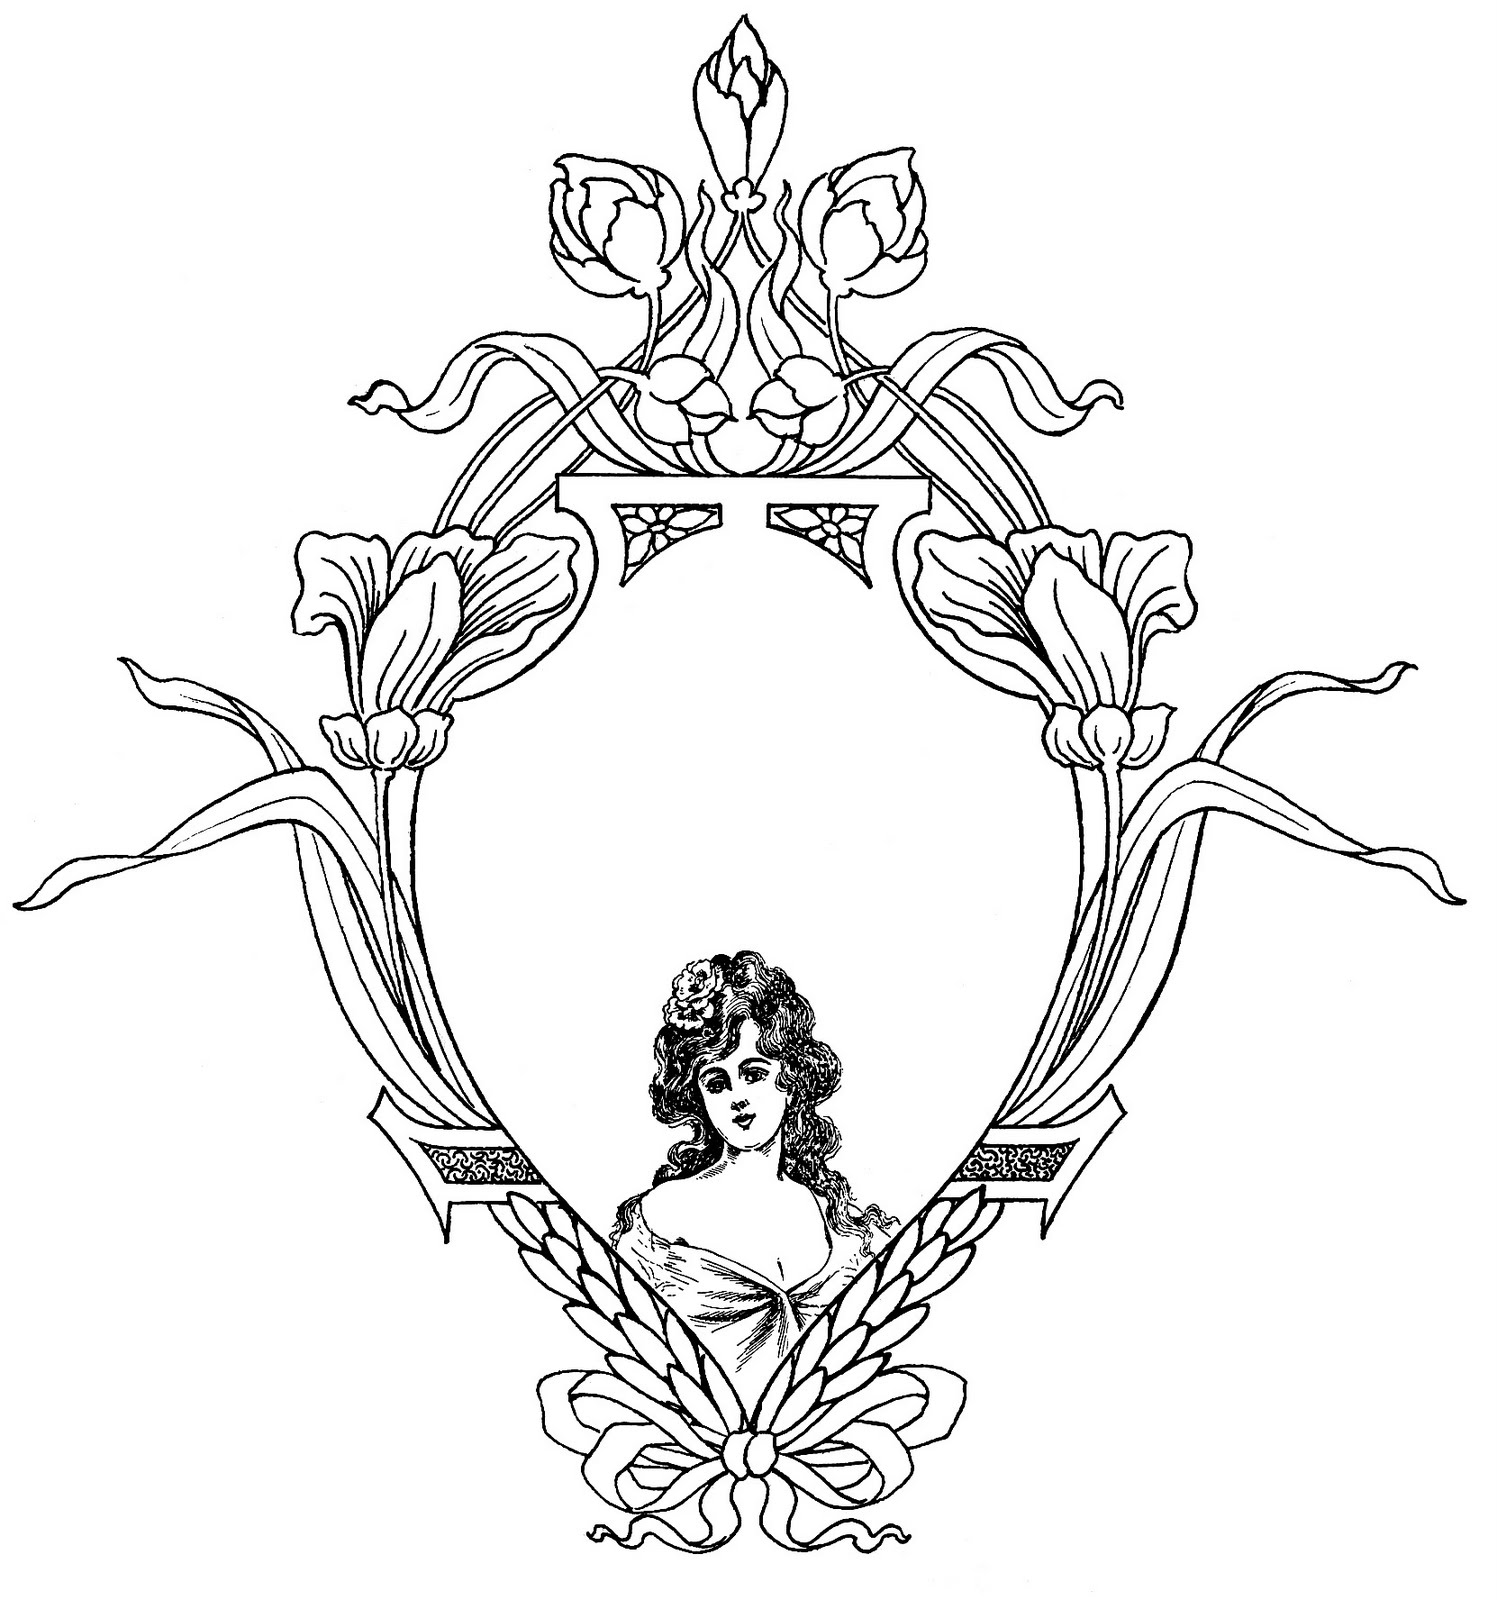 Broken Heart Coloring Pages also Simple Border Or Frames additionally 26458716537633497 likewise Free Wedding Border Clipart together with Vector Hand Drawn Rose Wreath In Heart Shape Illustration Gm504036340 82923421. on valentines day borders